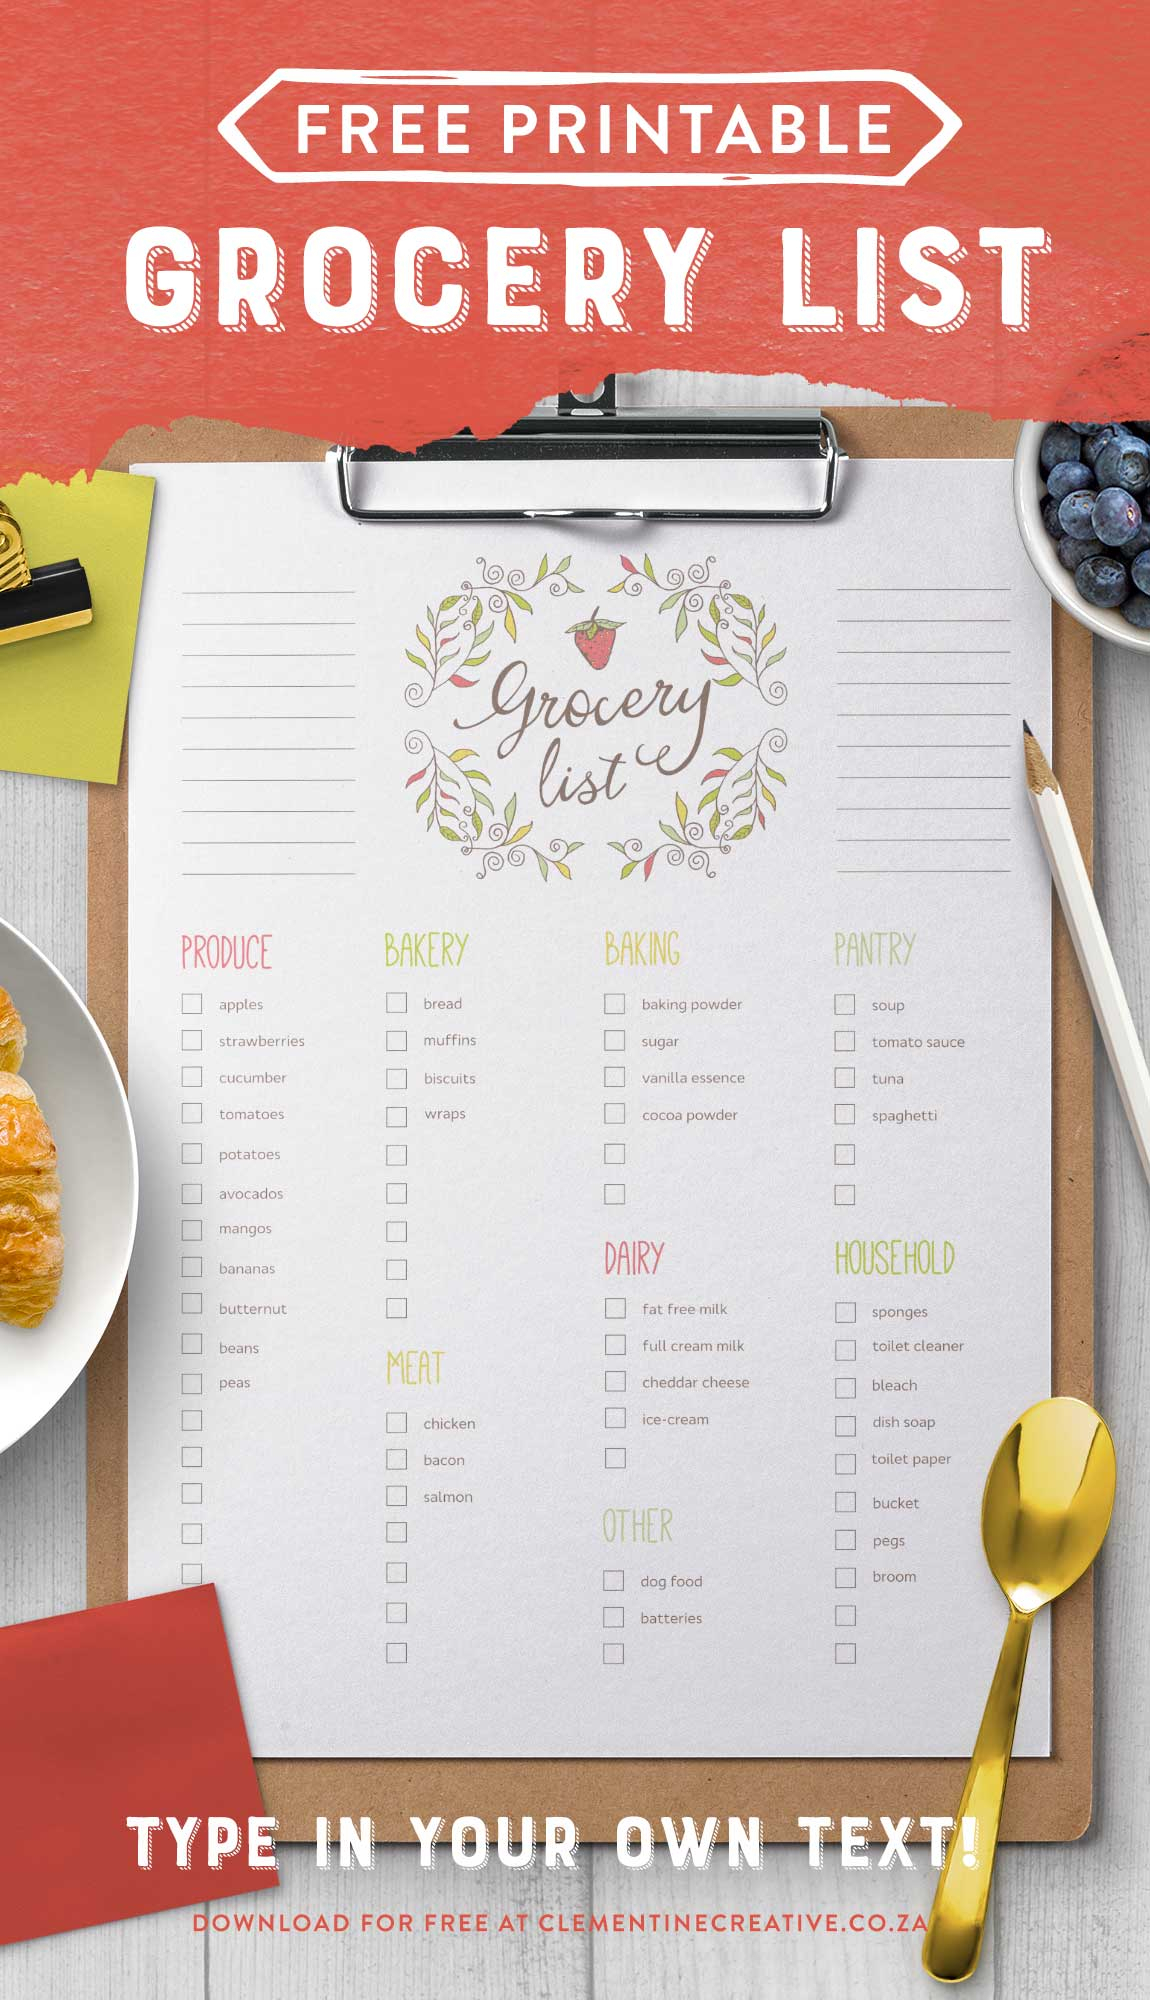 Free Editable Grocery List {Printable Pdf} in Editable Grocery List